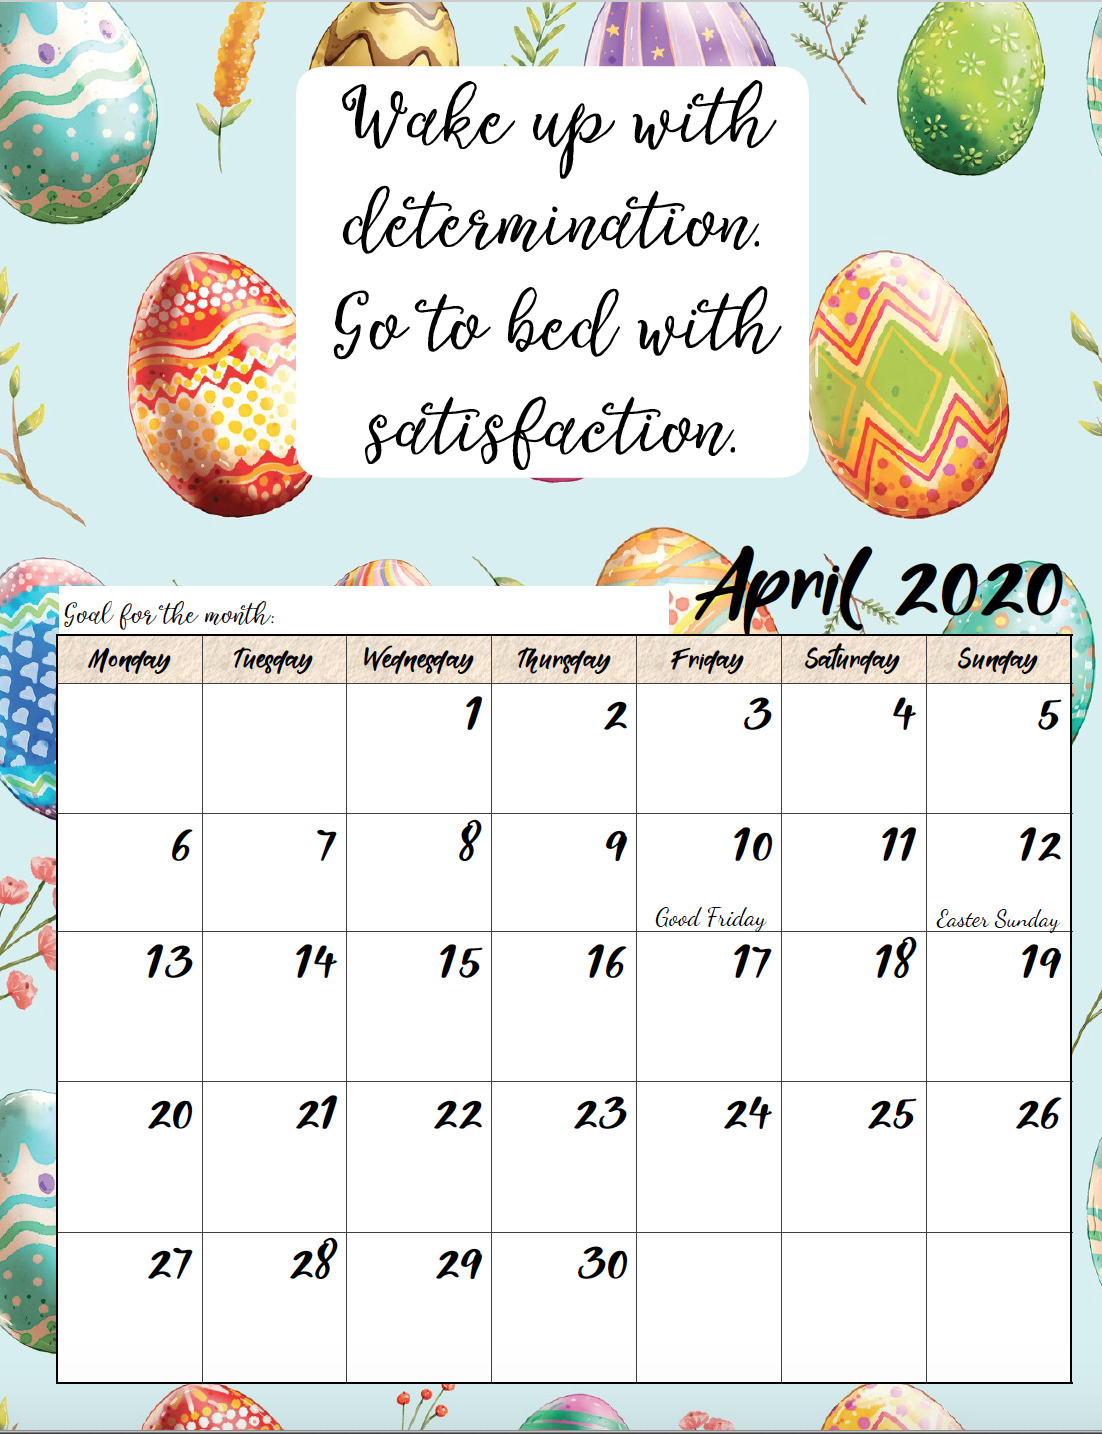 This is a photo of Fabulous Free Printable Calendars for 2020